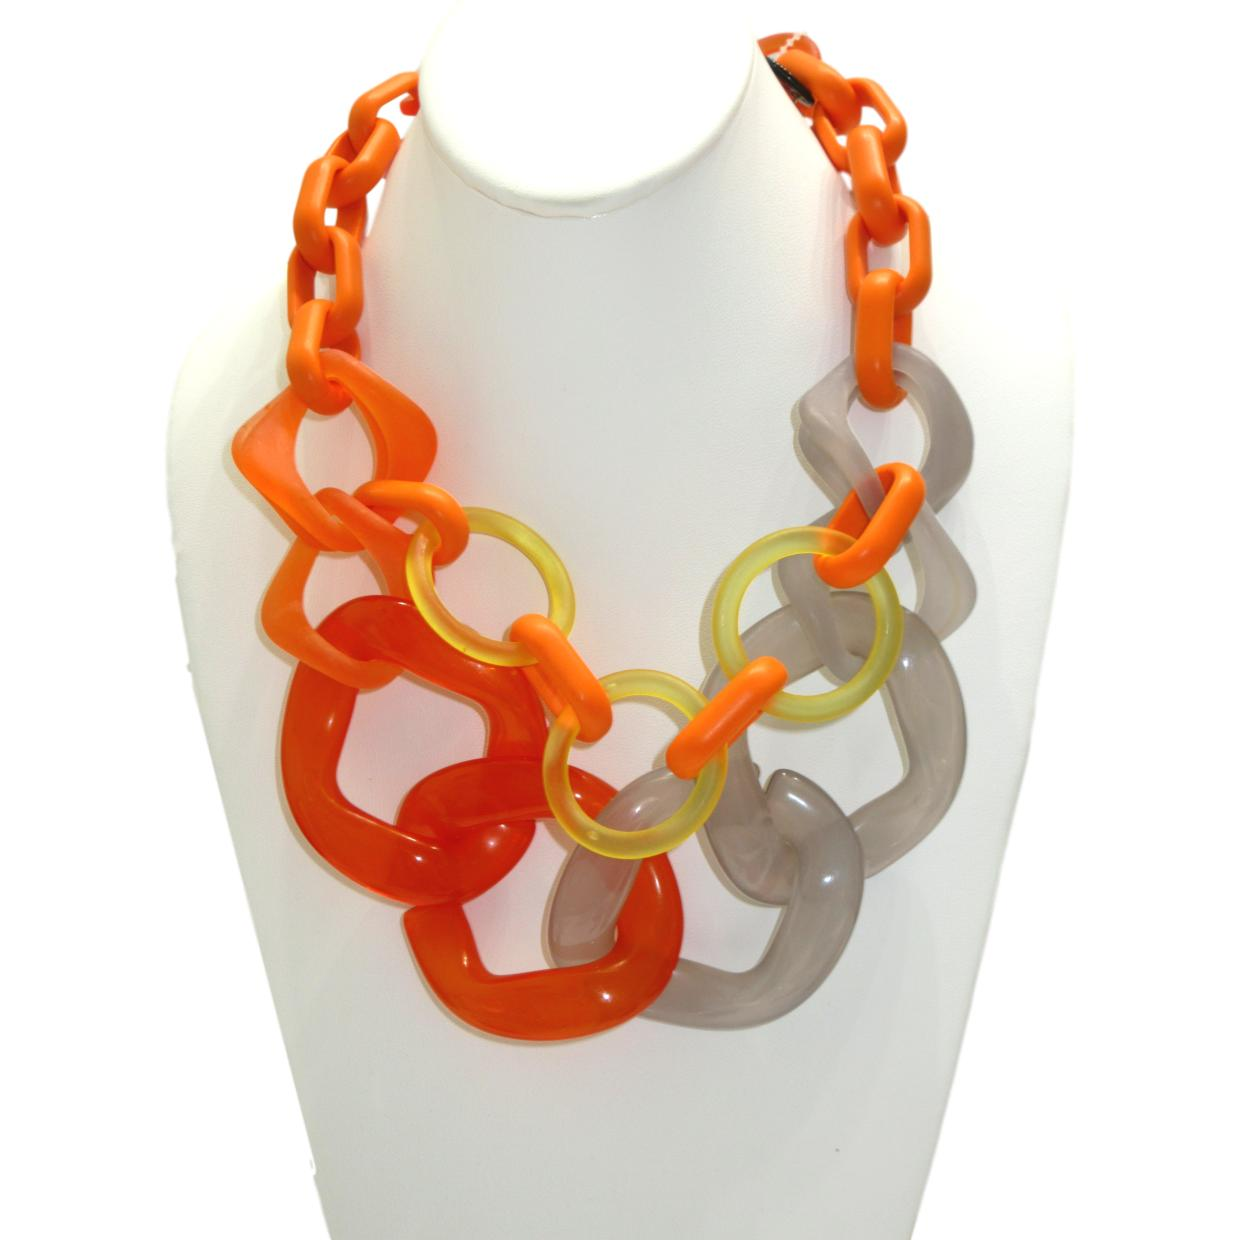 <i>Happy Resin Necklace</i><br>Made in Italy<br>